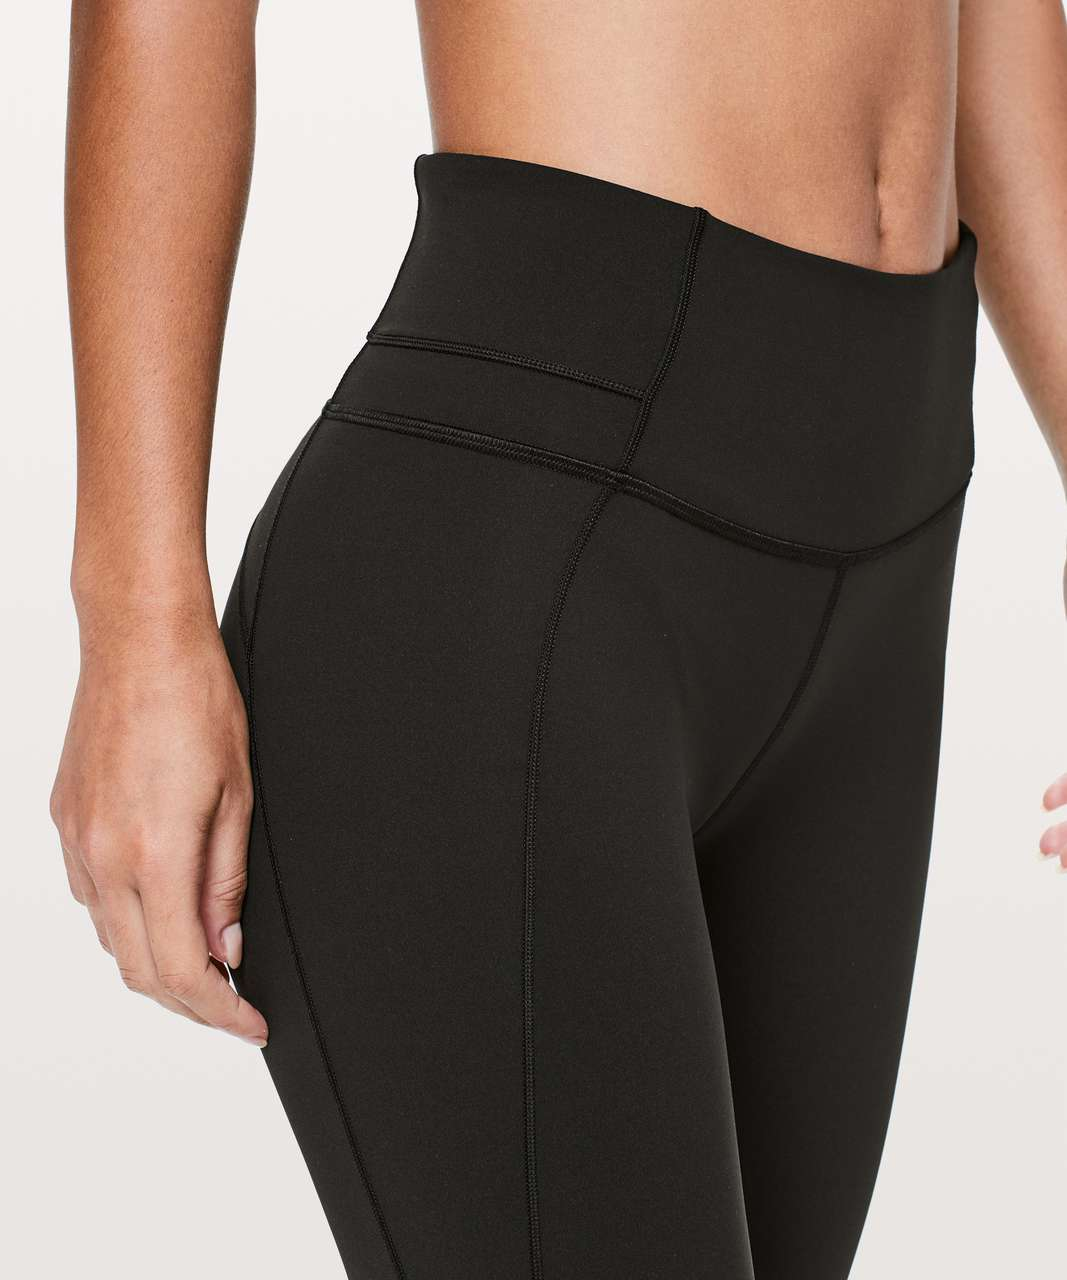 "Lululemon Groove Pant Bootcut 32"" - Black (Second Release)"